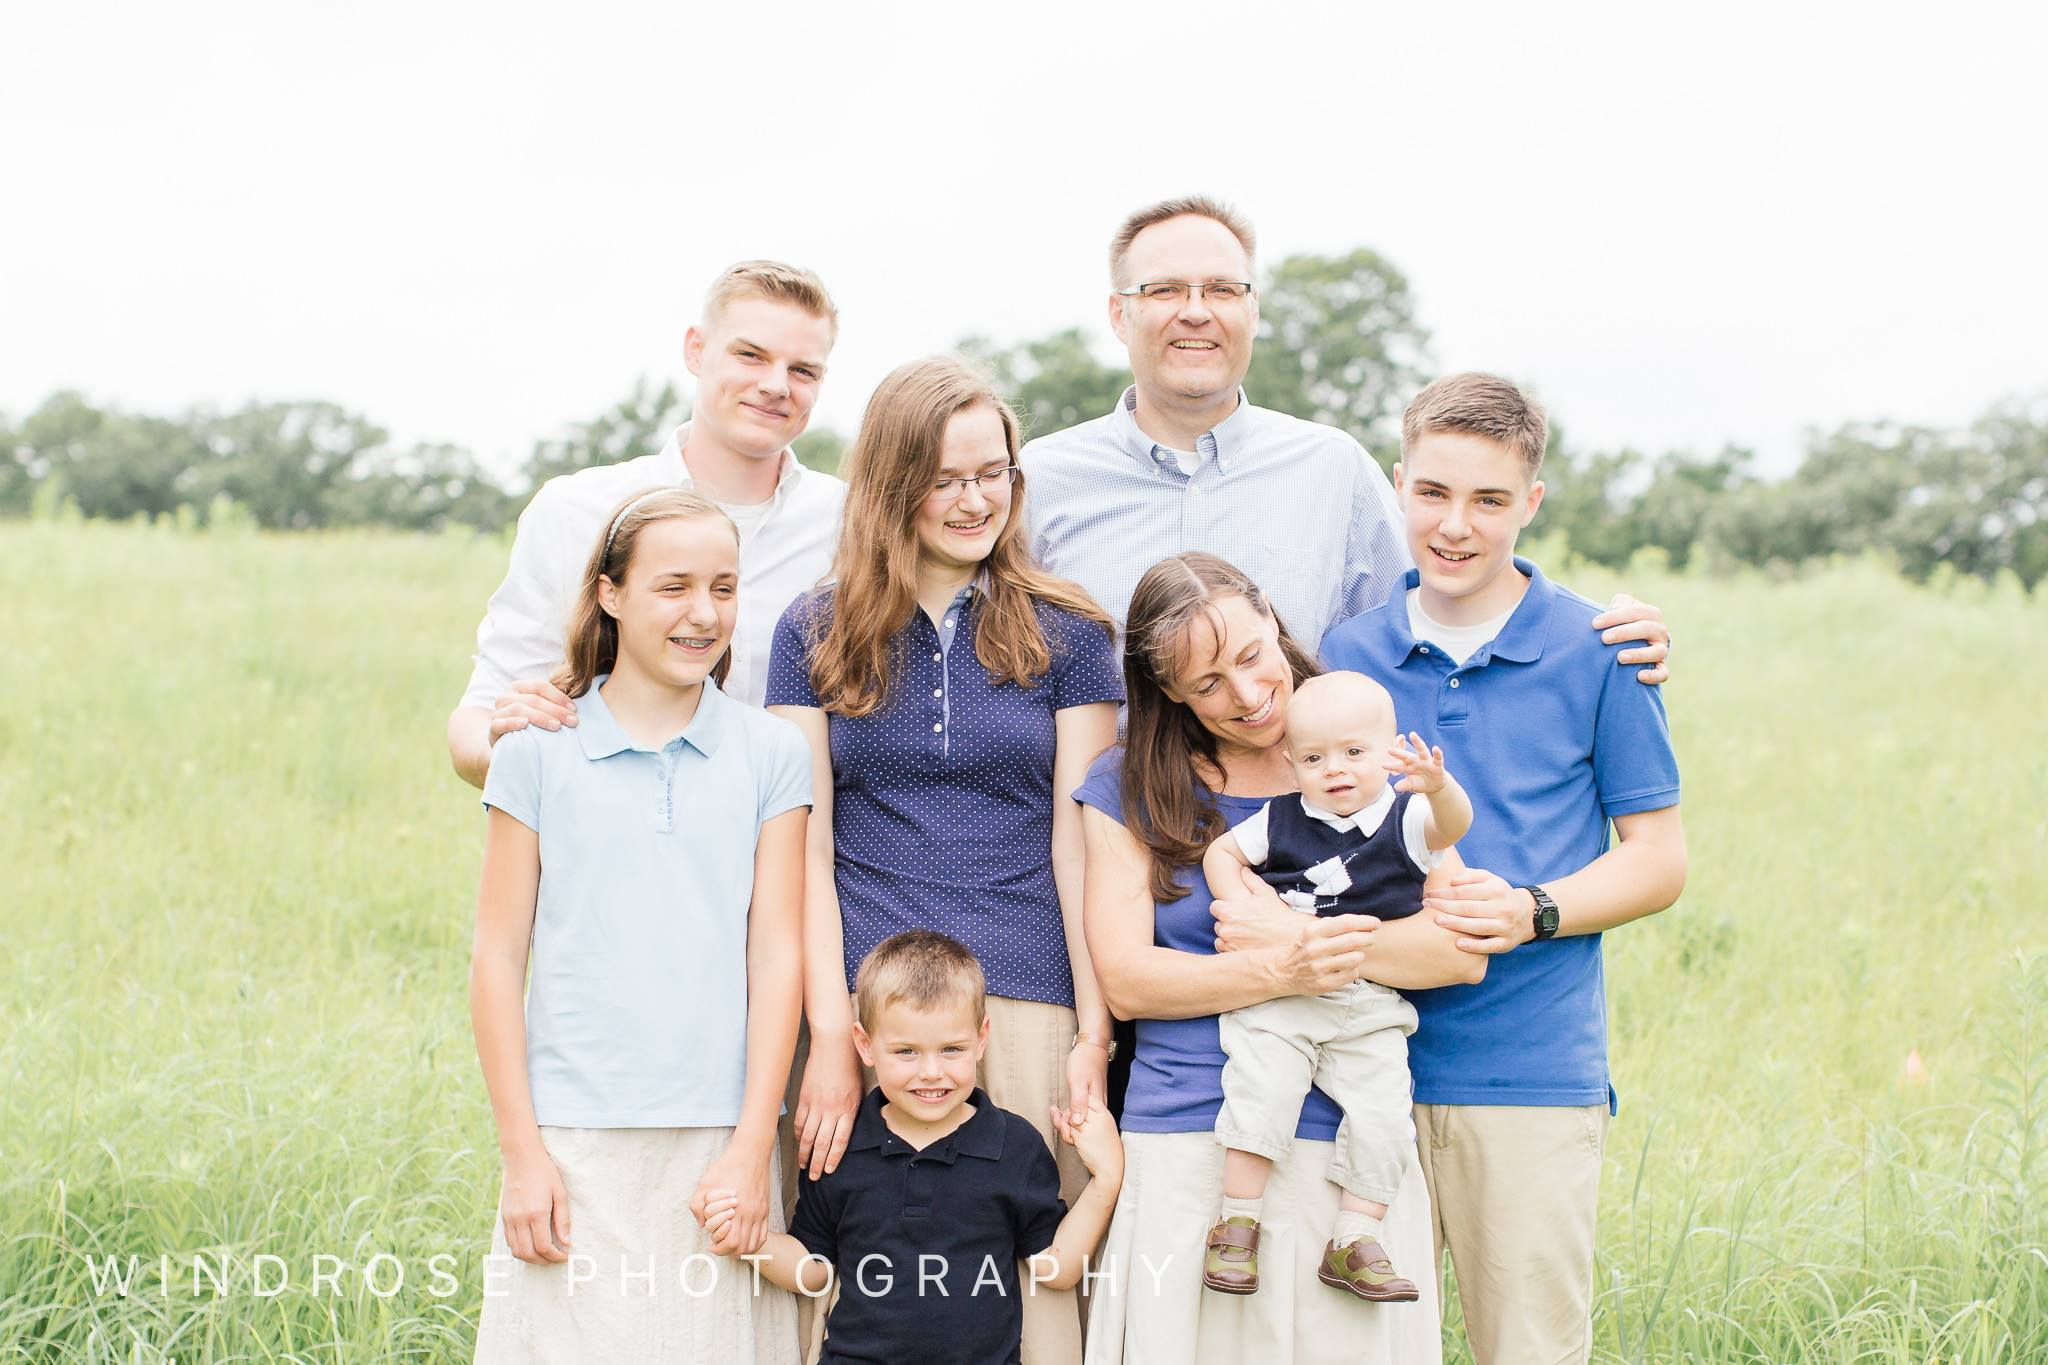 Mantorville-Family-Portrait-Photography-Rochester-Minnesota-4.jpg